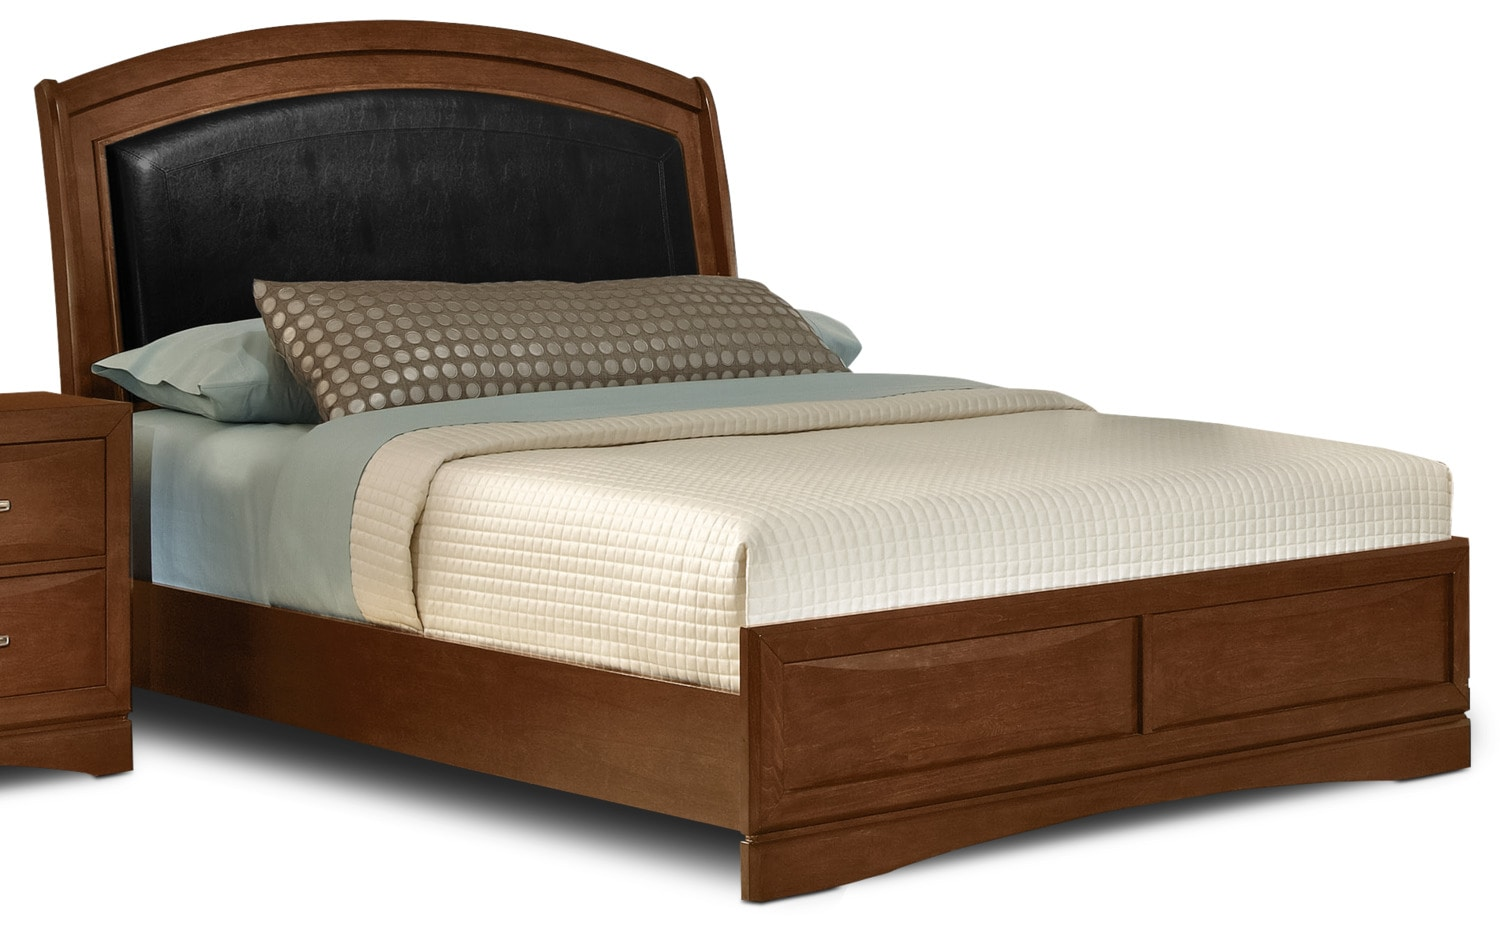 Bedroom Furniture - Beverly King Bed